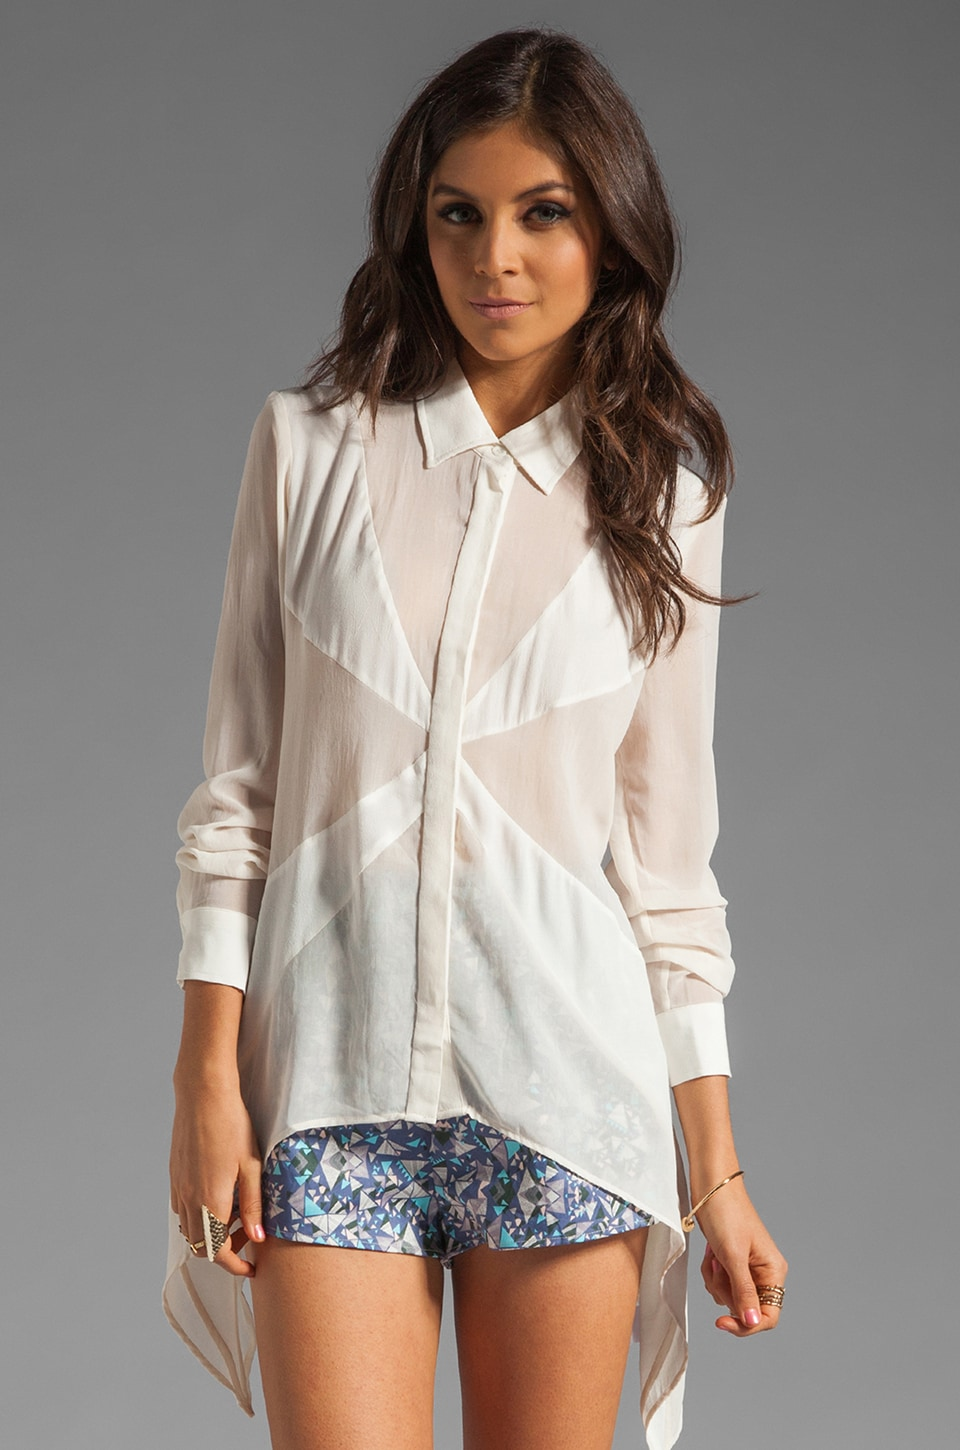 Finders Keepers Simple Life Long Sleeve Shirt in Ivory